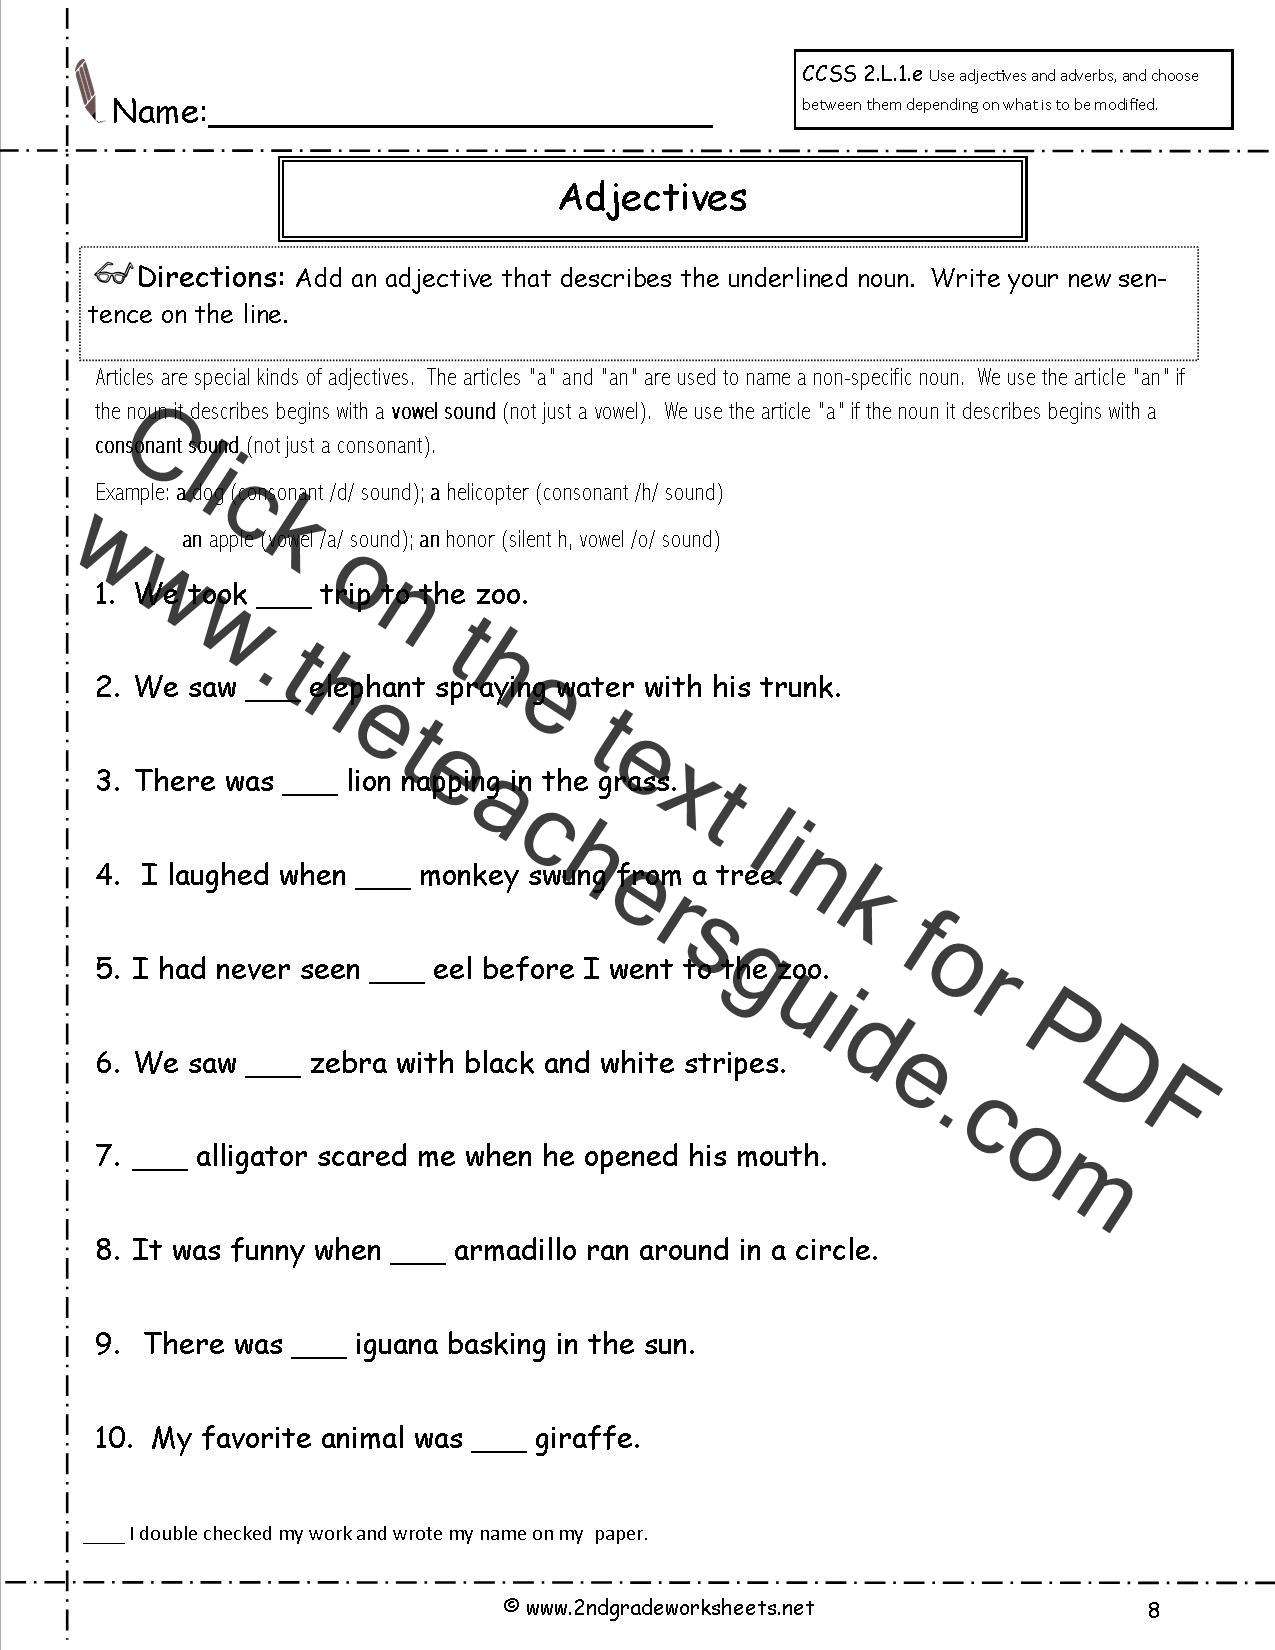 Printables 2nd Grade Grammar Worksheets free languagegrammar worksheets and printouts adjectives worksheets